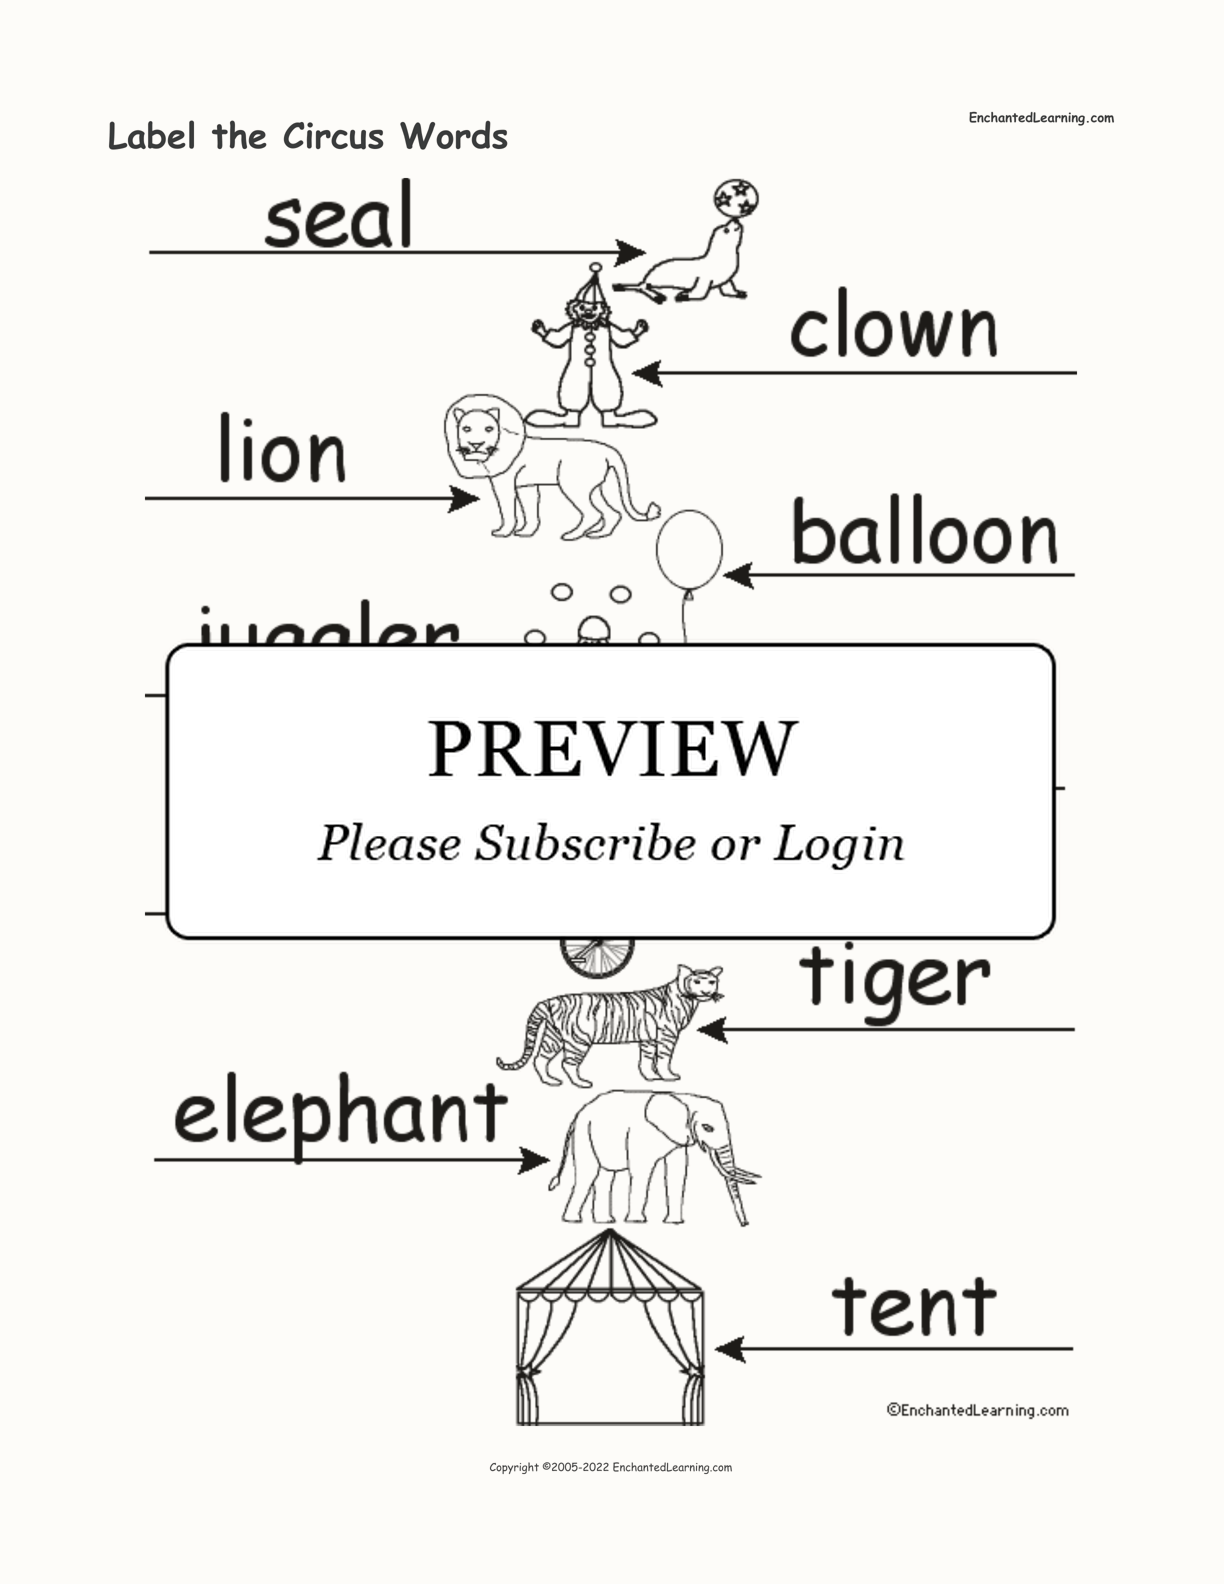 Label The Circus Words